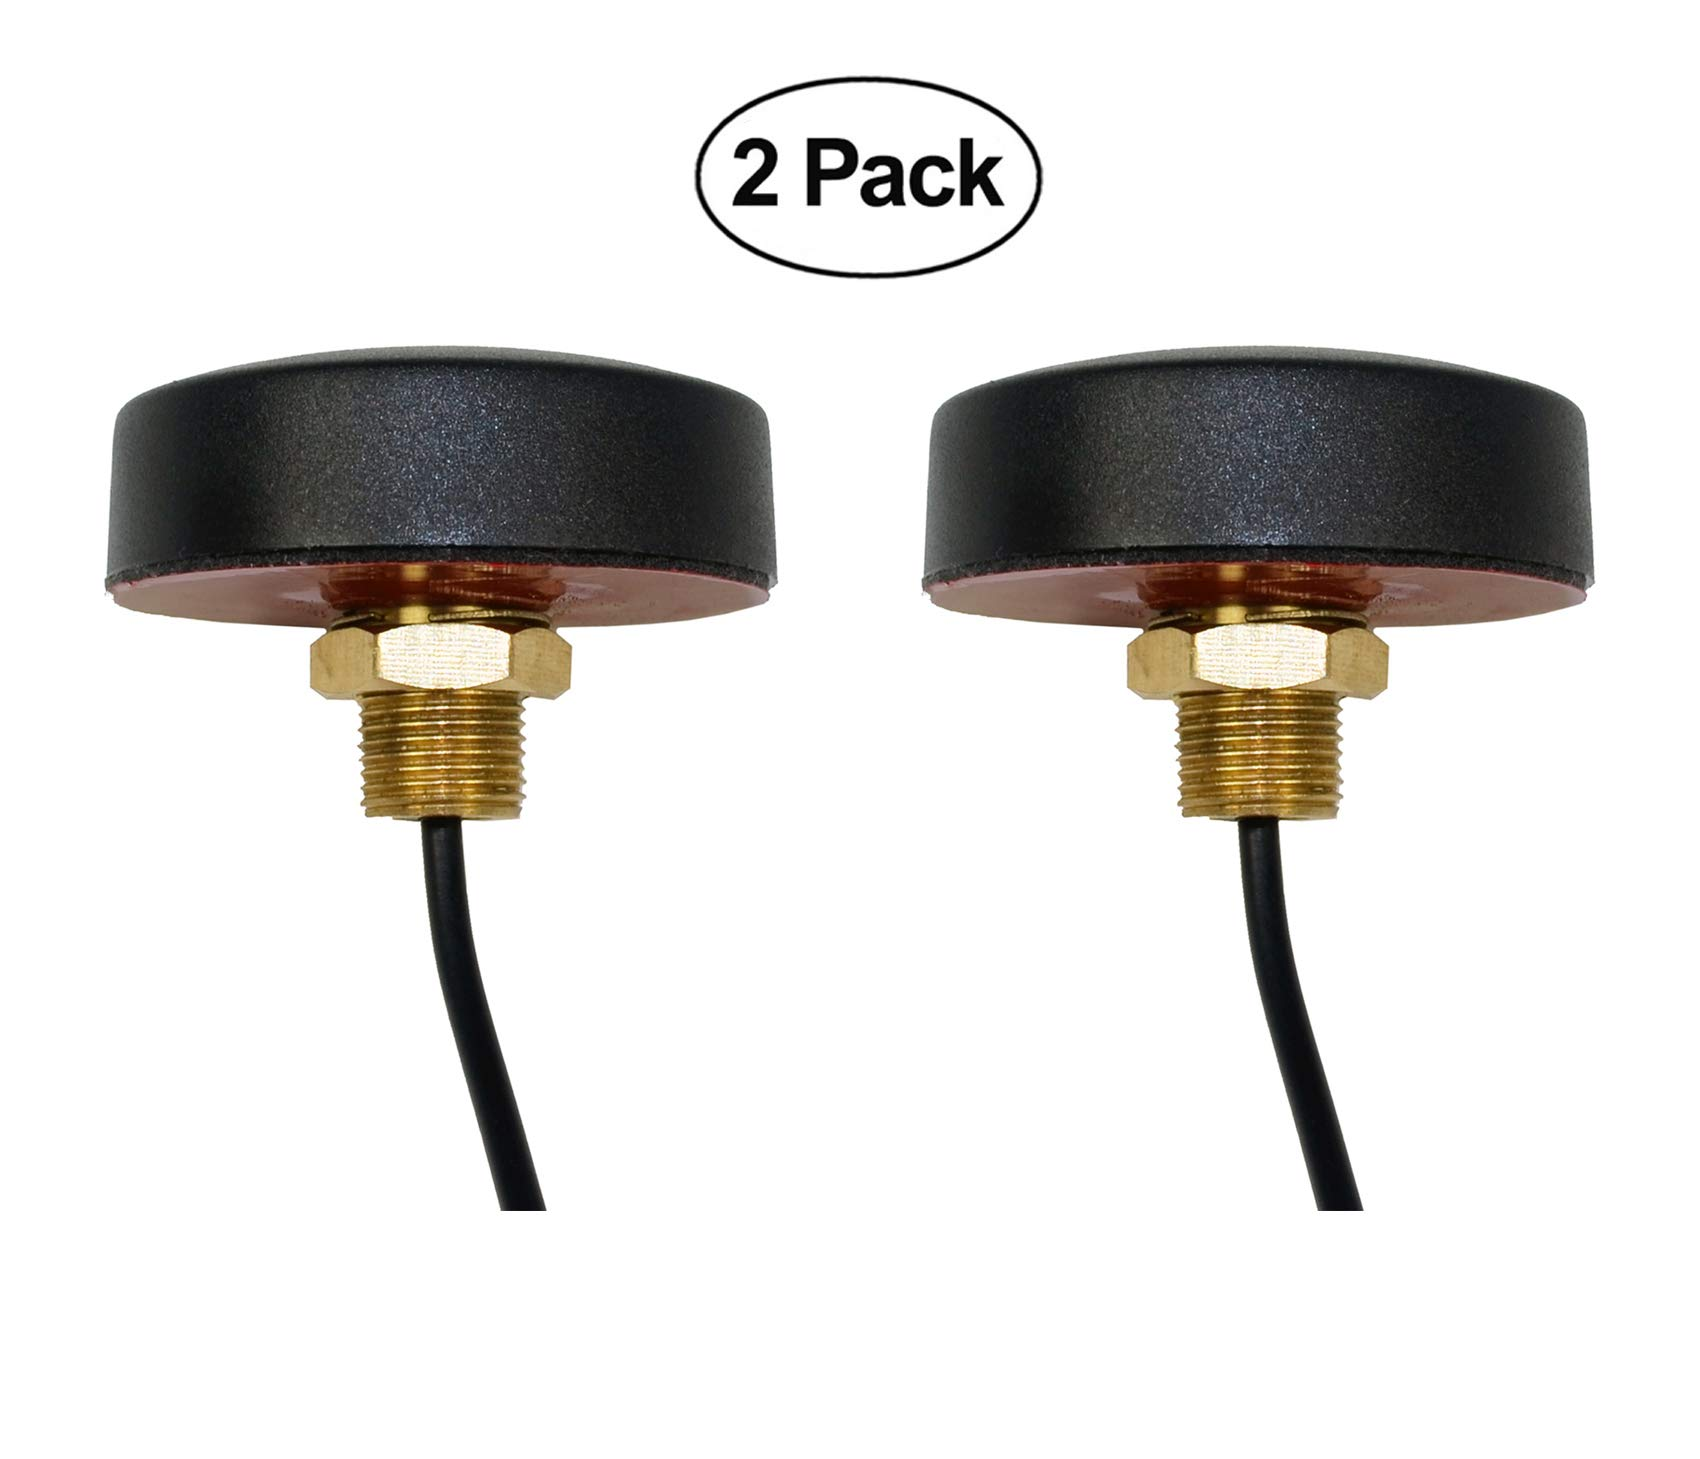 Proxicast Ultra Low-Profile 3G / 4G LTE Cellular/PCS Omni-Directional 2 dBi Screw-Mount Antenna for Verizon, AT&T, Sprint (2 Pack)